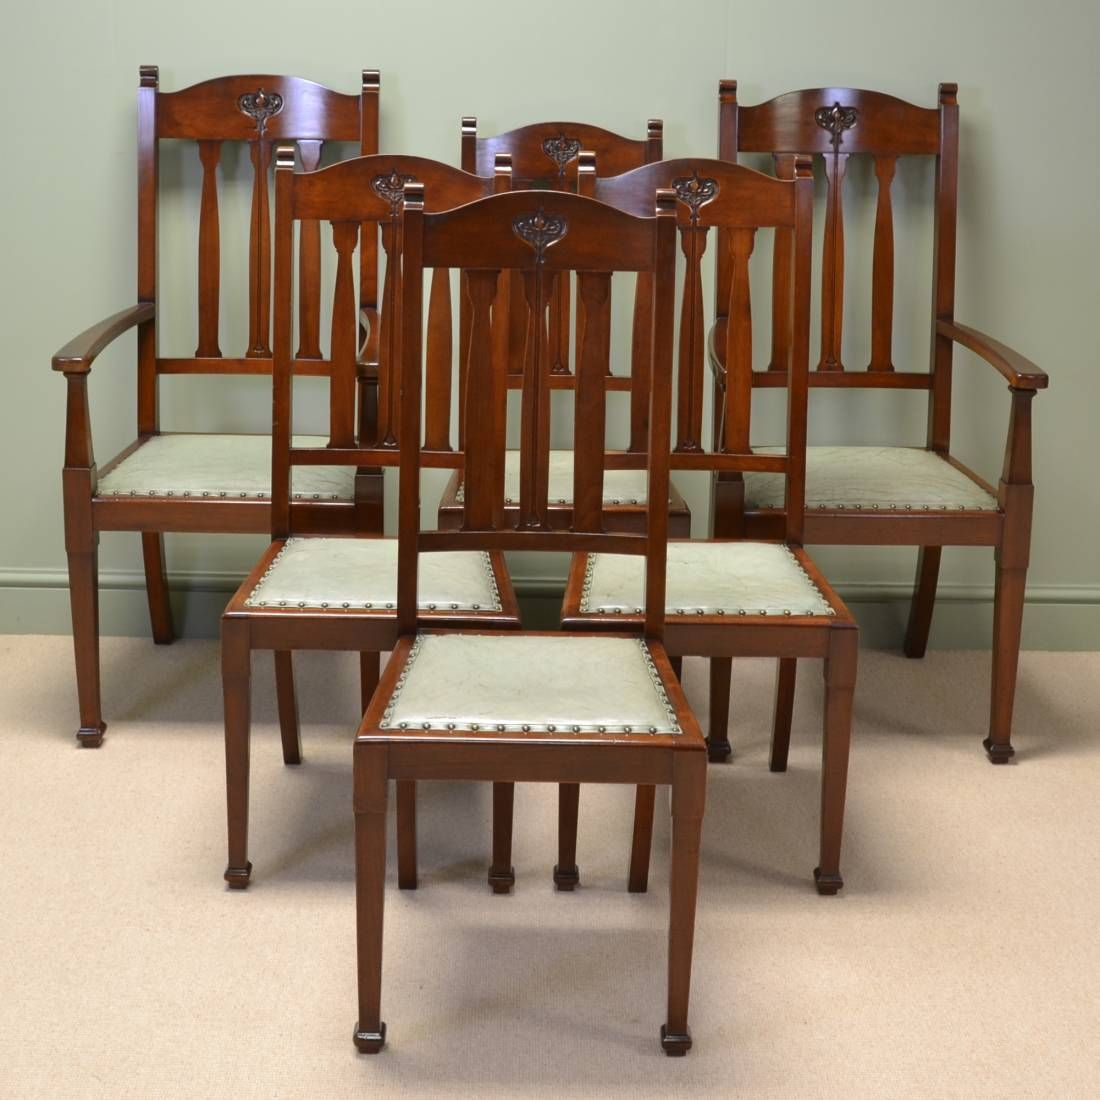 arts and crafts chairs rowe furniture keller chair spectacular quality set of six walnut